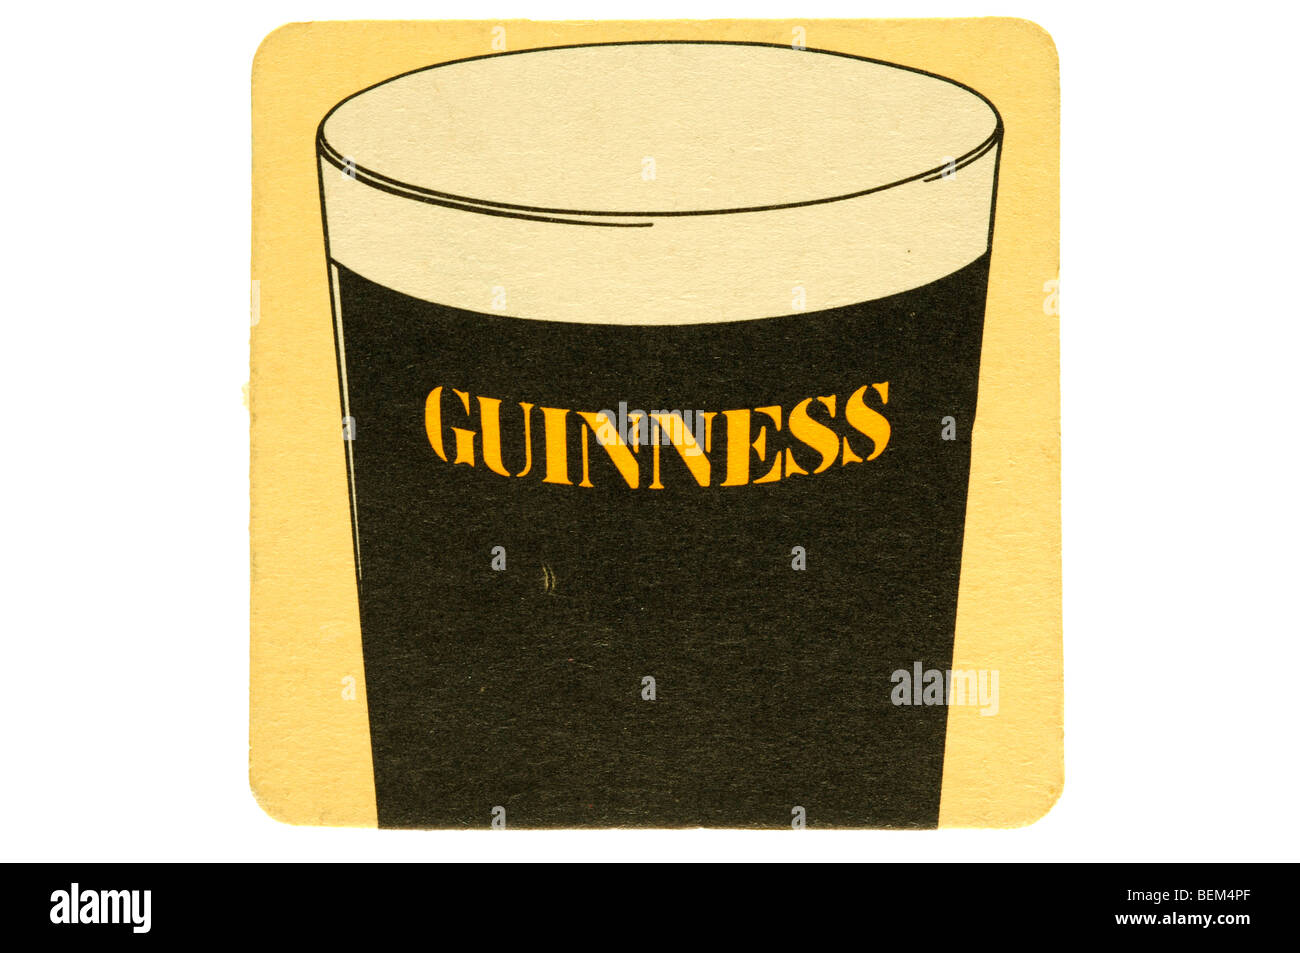 guiness - Stock Image